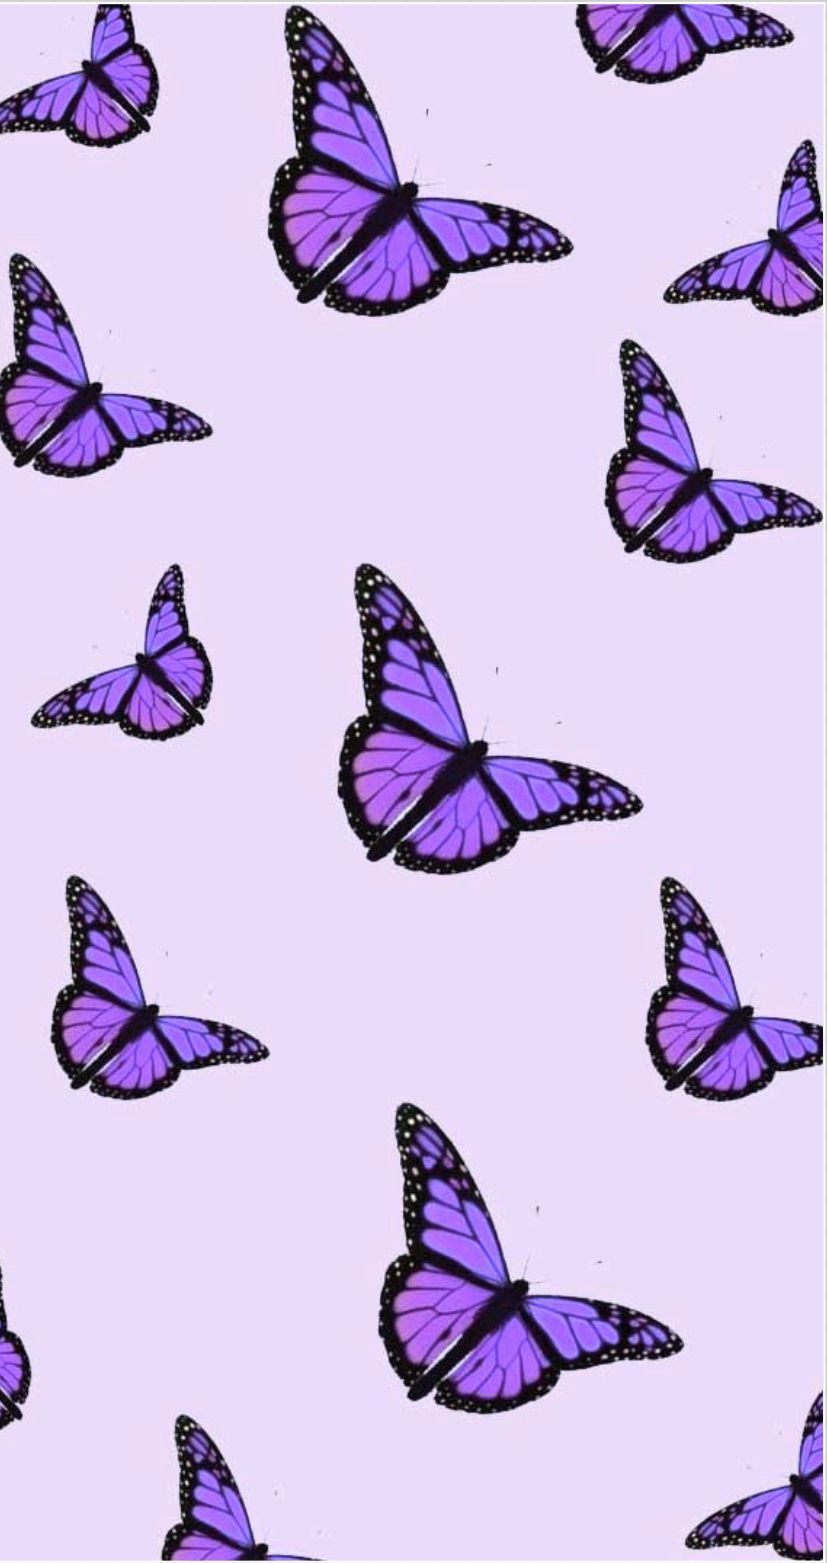 Purple Butterfly Aesthetic In 2020 Butterfly Wallpaper Iphone Purple Wallpaper Iphone Cute Patterns Wallpaper